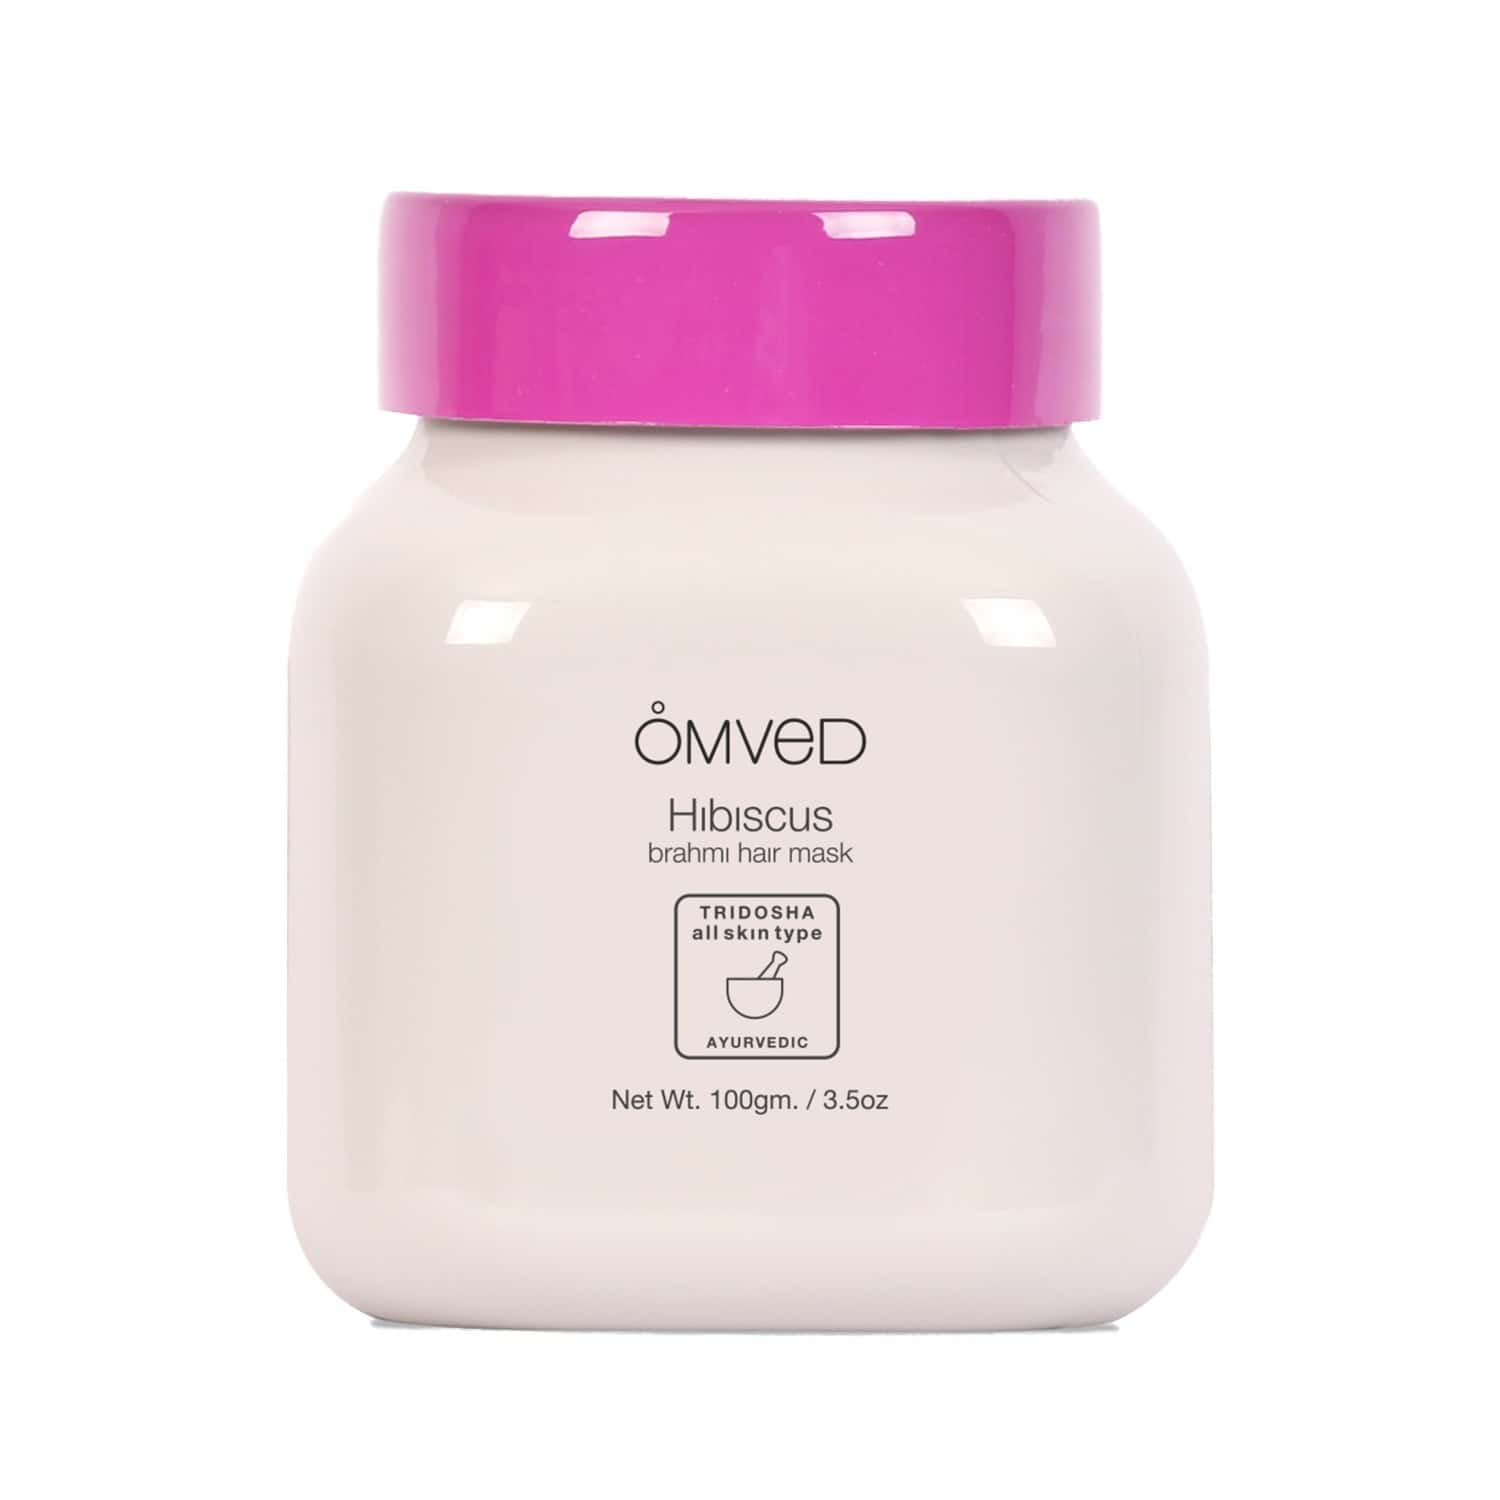 Omved Hibiscus Brahmi Hair Mask - Ayurvedic Hair Pack Powder With 14 Natural Herbs For Dandruff And Itchy Scalp Treatment- 100 G